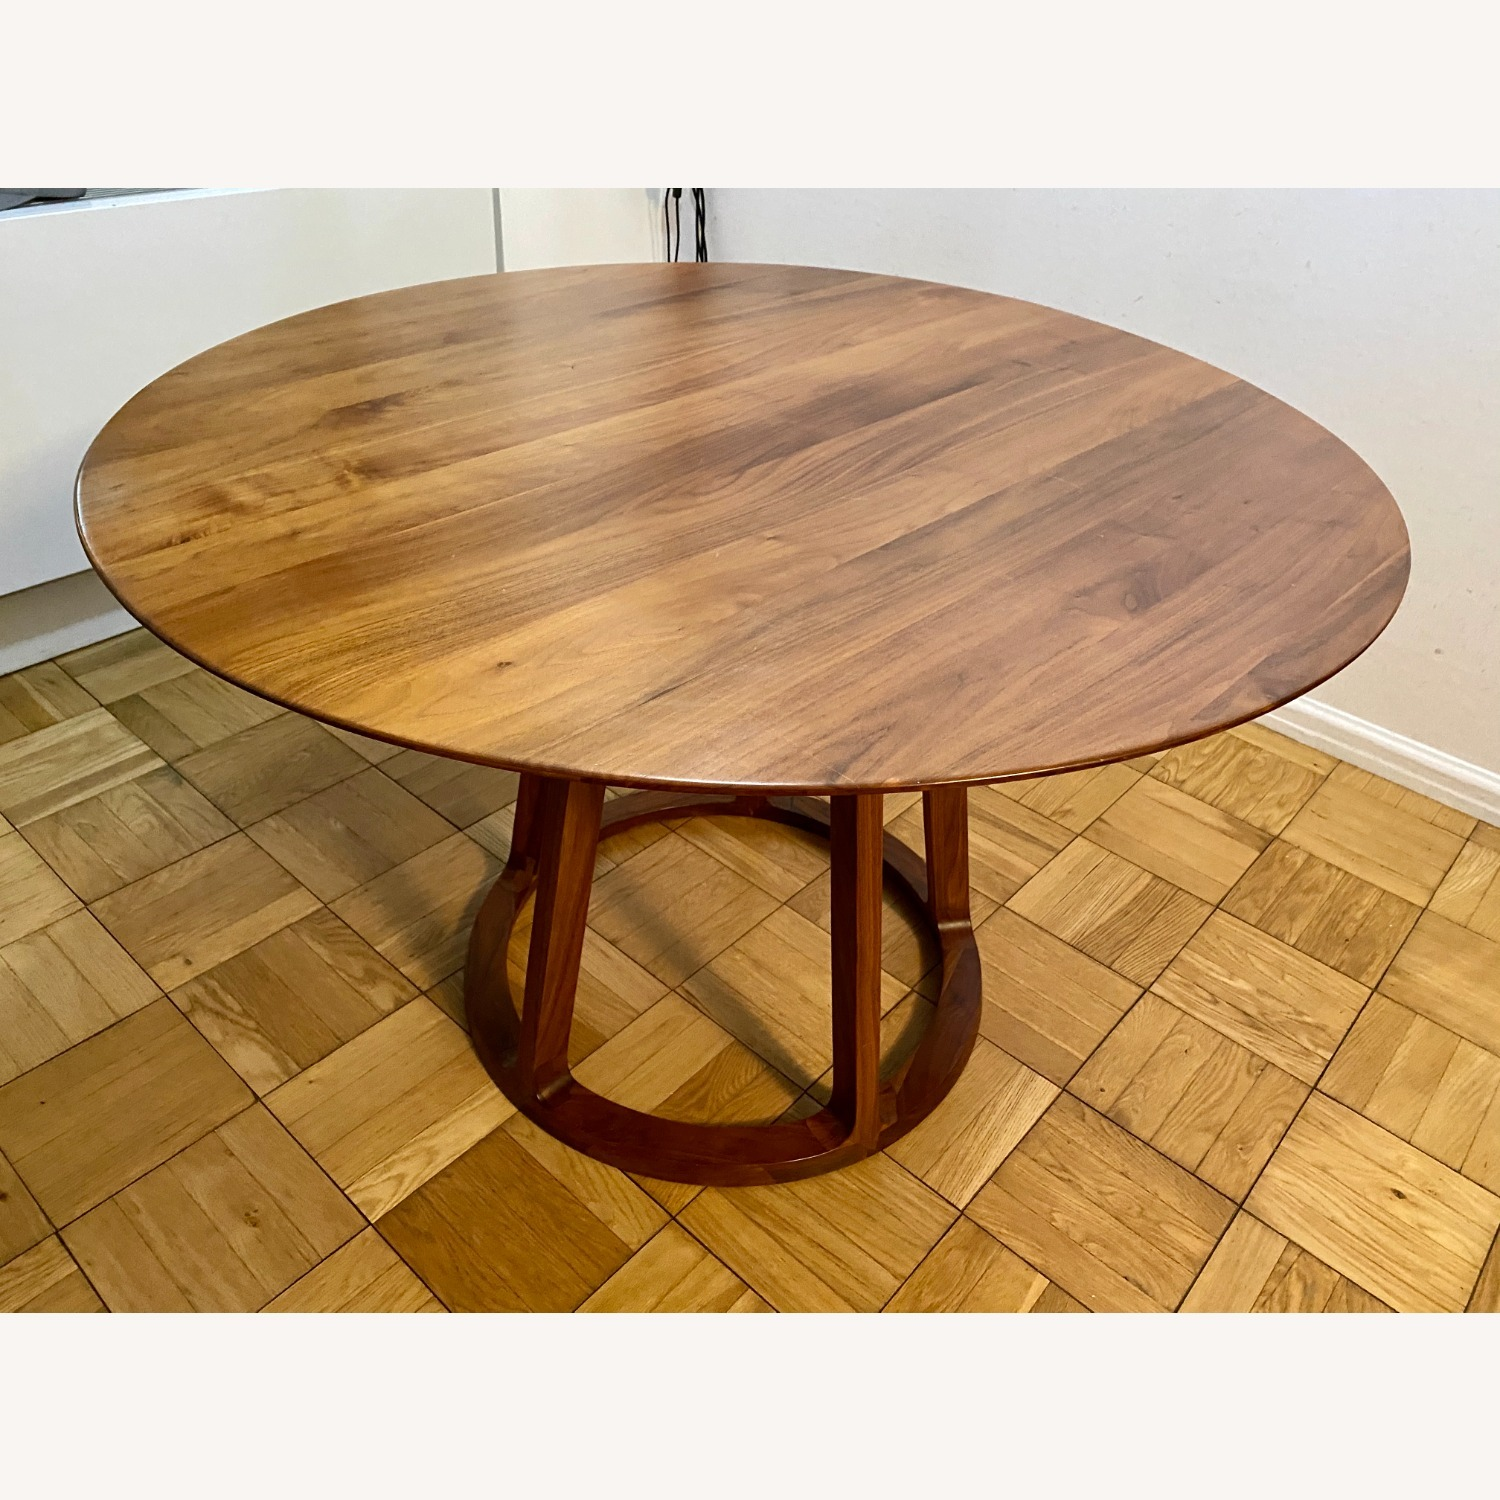 Rejuvenation Wood Modern Round Dining Table - image-1